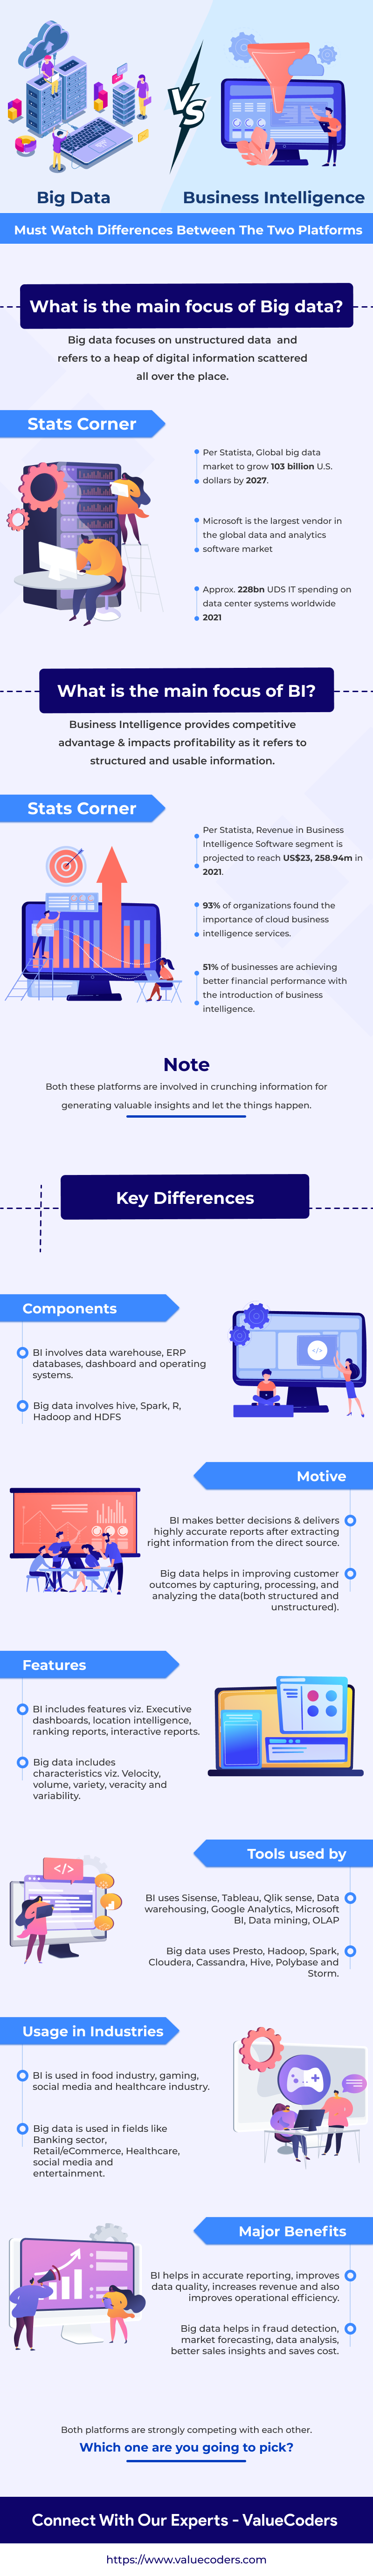 Big Data vs Business Intelligence: Must Watch Differences Between the Two Platforms